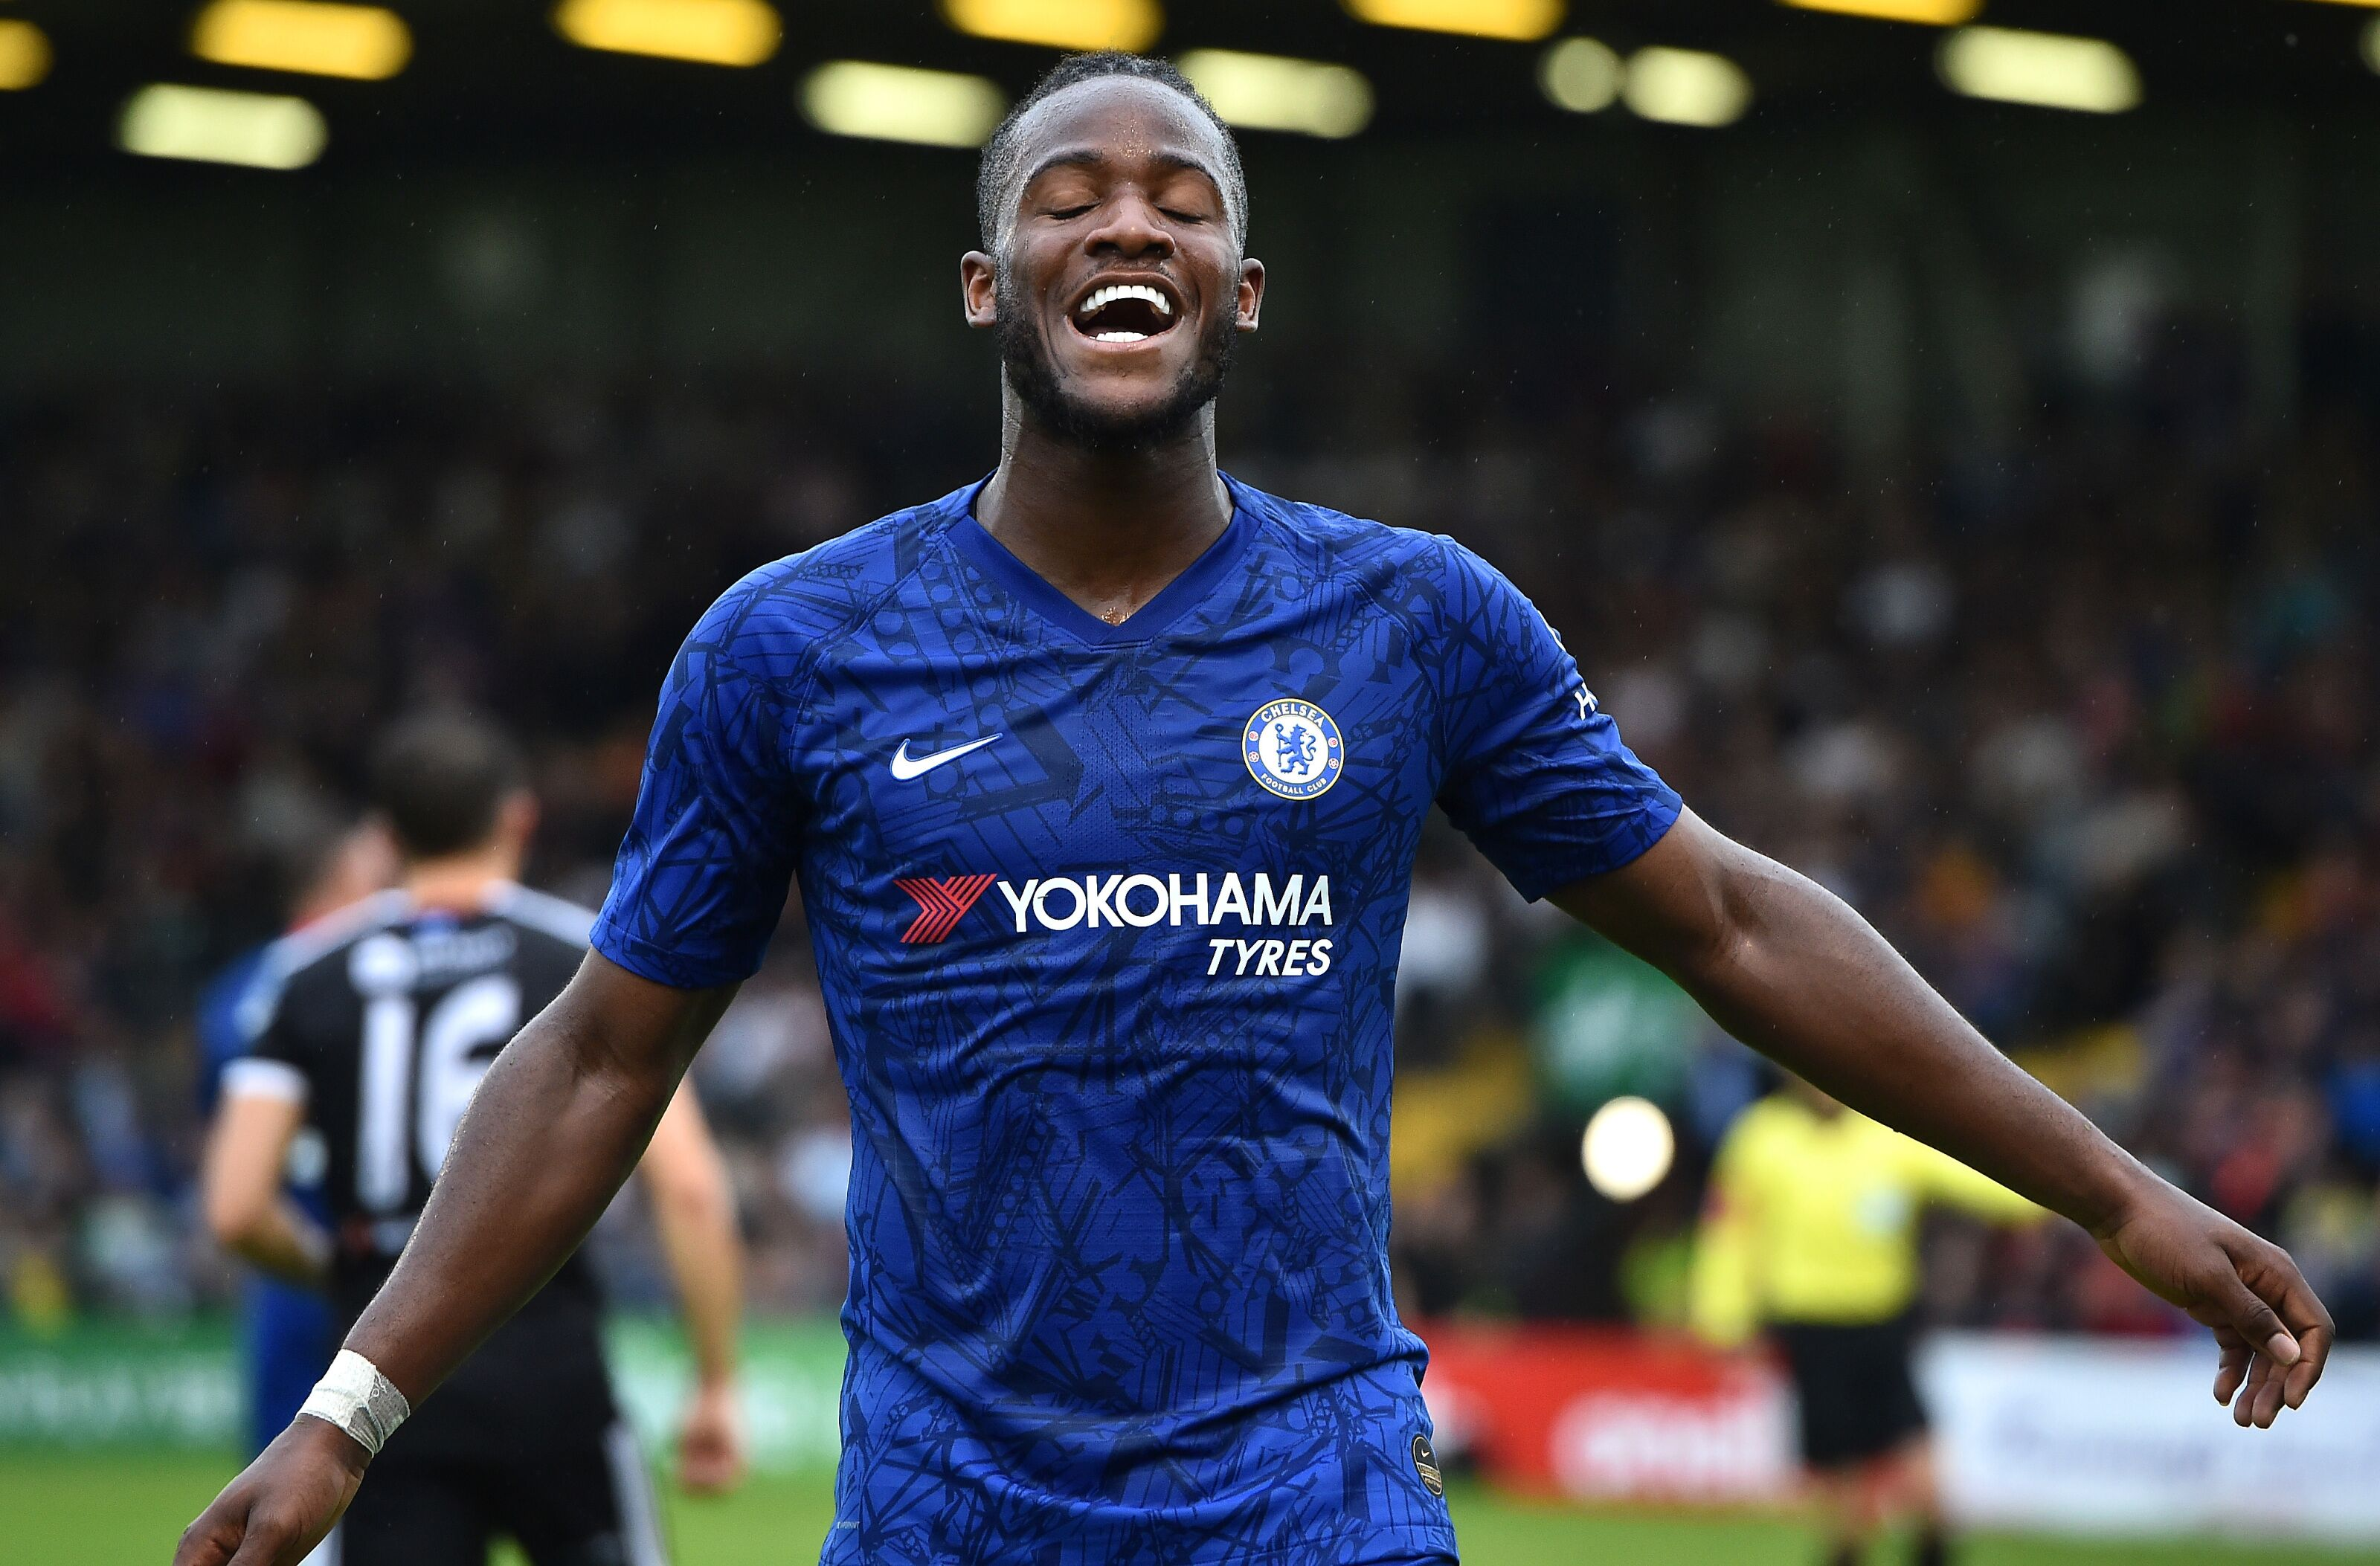 Chelsea: Frank Lampard should not rely on Michy Batshuayi as his starter